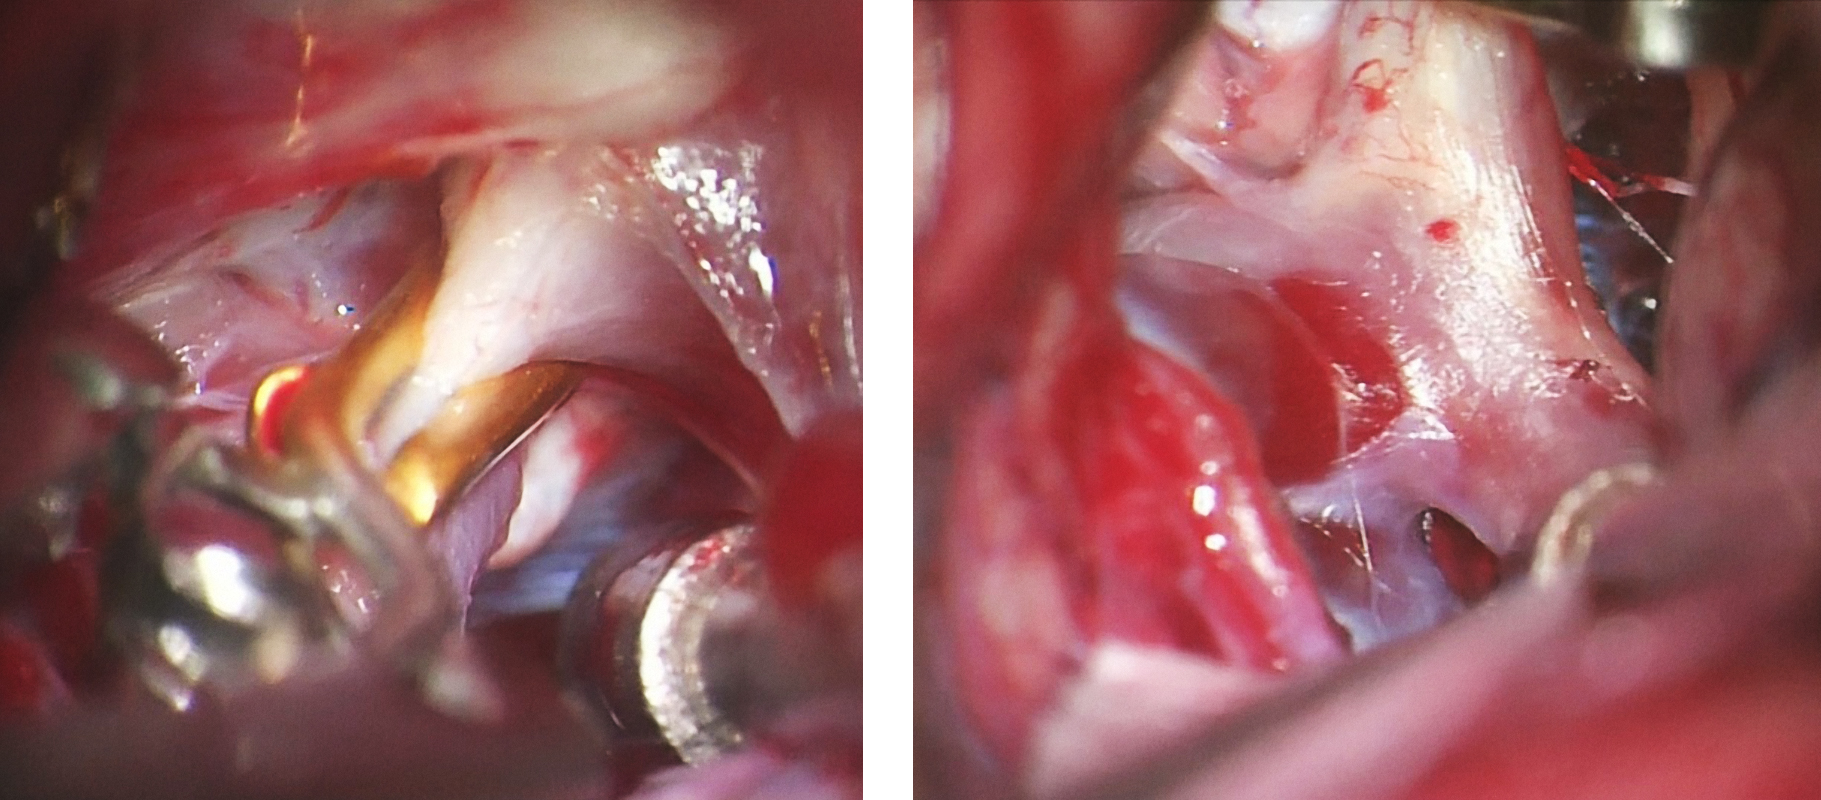 Figure 2: A temporary clip is being placed across the internal carotid artery at the skull base (left image) in expectation of deflation of a complex multilobulated posterior communicating artery aneurysm (right image). The upper pole of this aneurysm's dome is adherent to the lateral carotid wall. Deflation of this complex aneurysm allows expanded working angles around the neck for deployment of the permanent clip while protecting the origin of the posterior communicating artery.